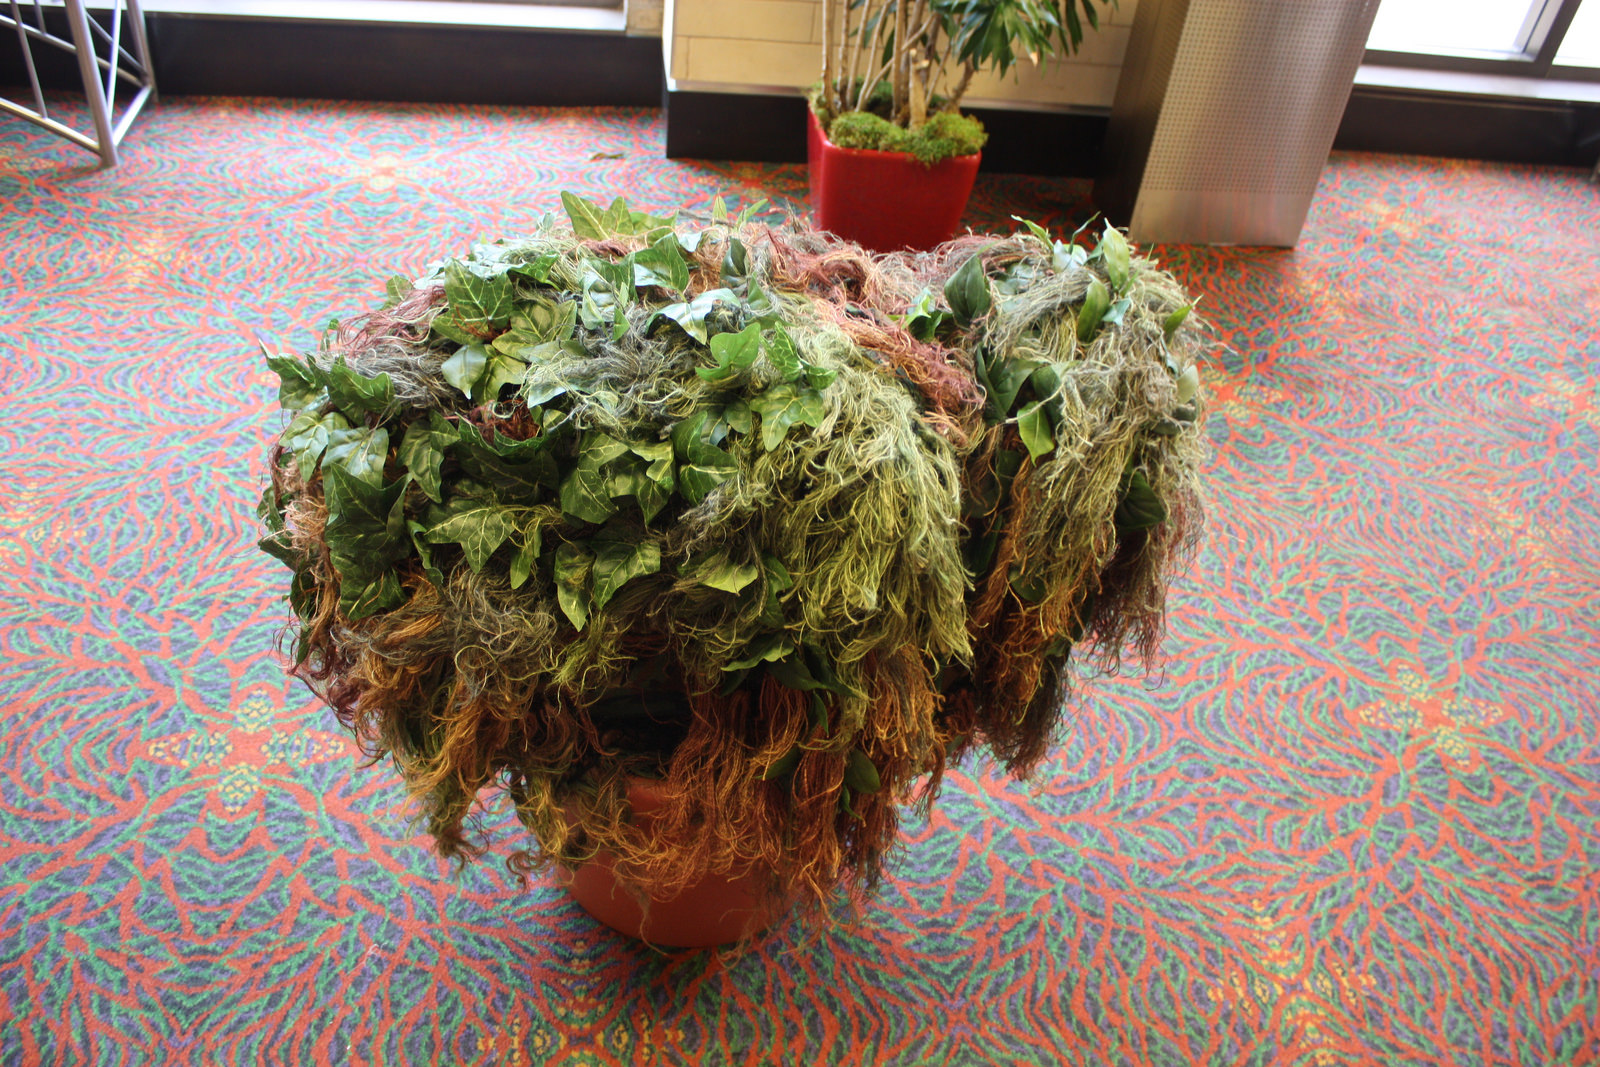 This is not a potted plant, rather it's one of the most deceiving cosplays of this year's San Japan. This trickster appeared in major walkways, moving every few minutes to startle new victims. Photo by Kay Richter.